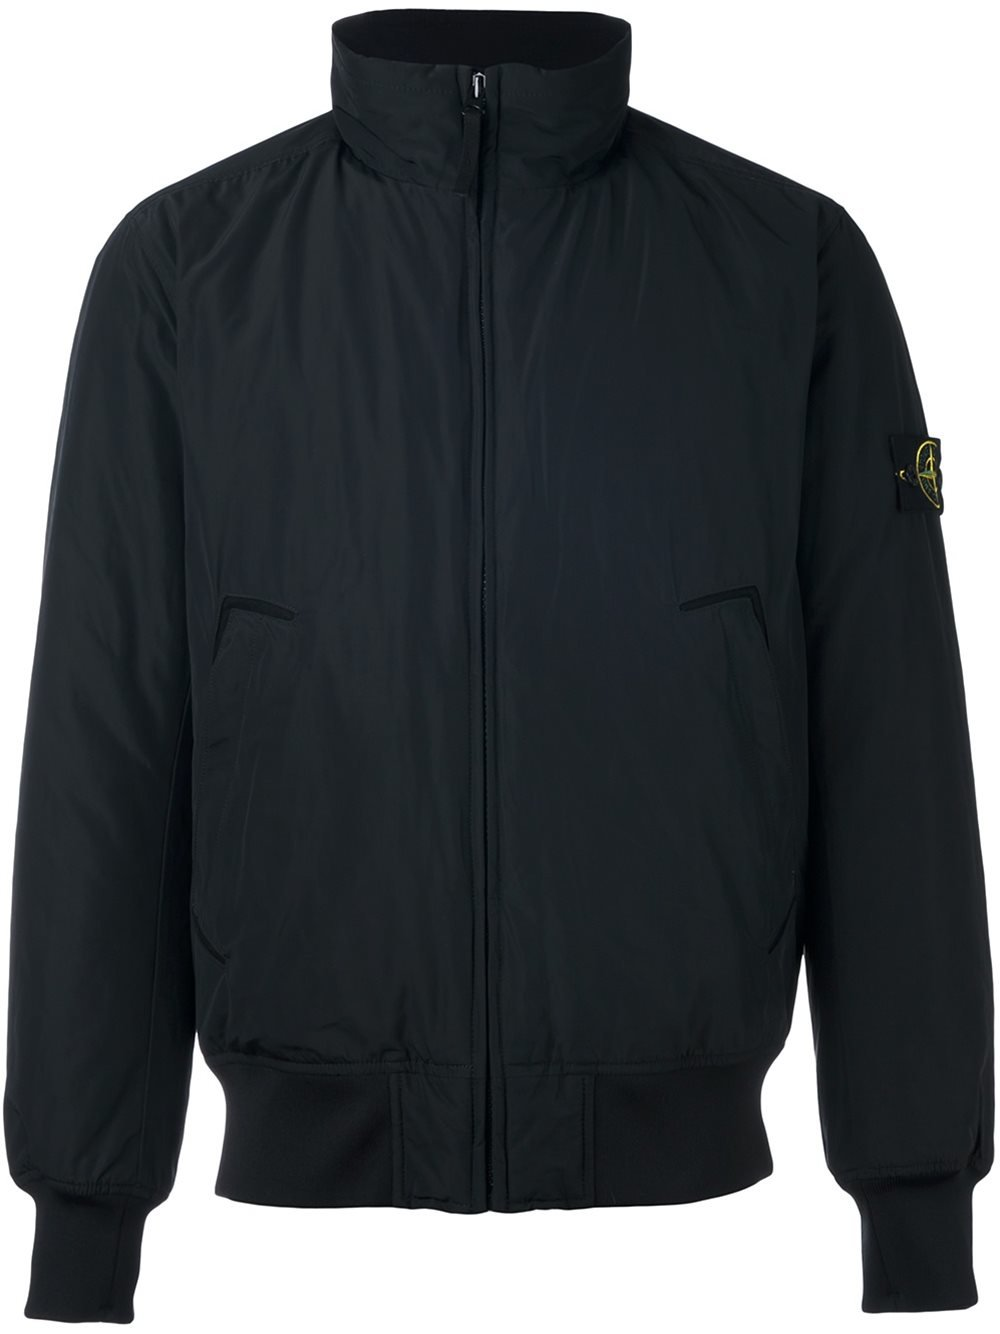 Stone Island High Neck Bomber Jacket in Black for Men - Lyst